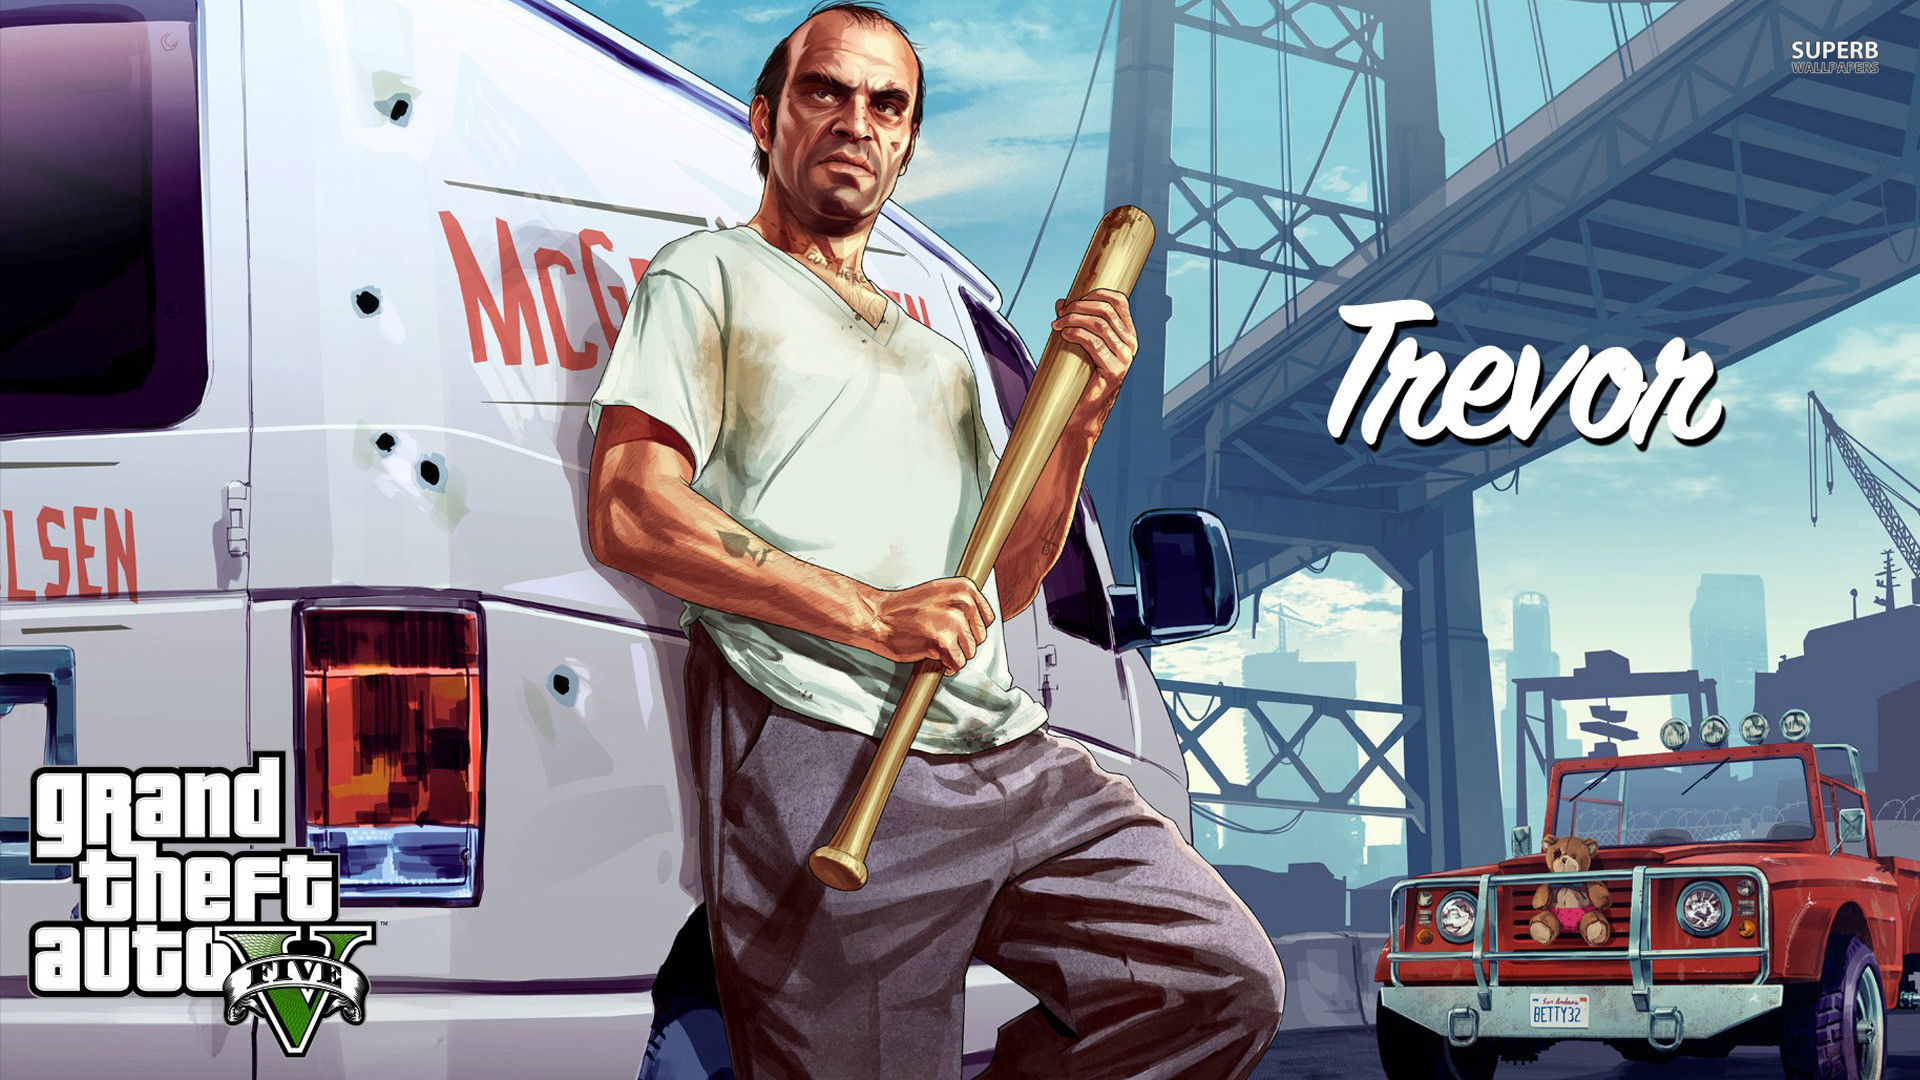 1920x1080 Wallpaper Gta Collection For Free Download